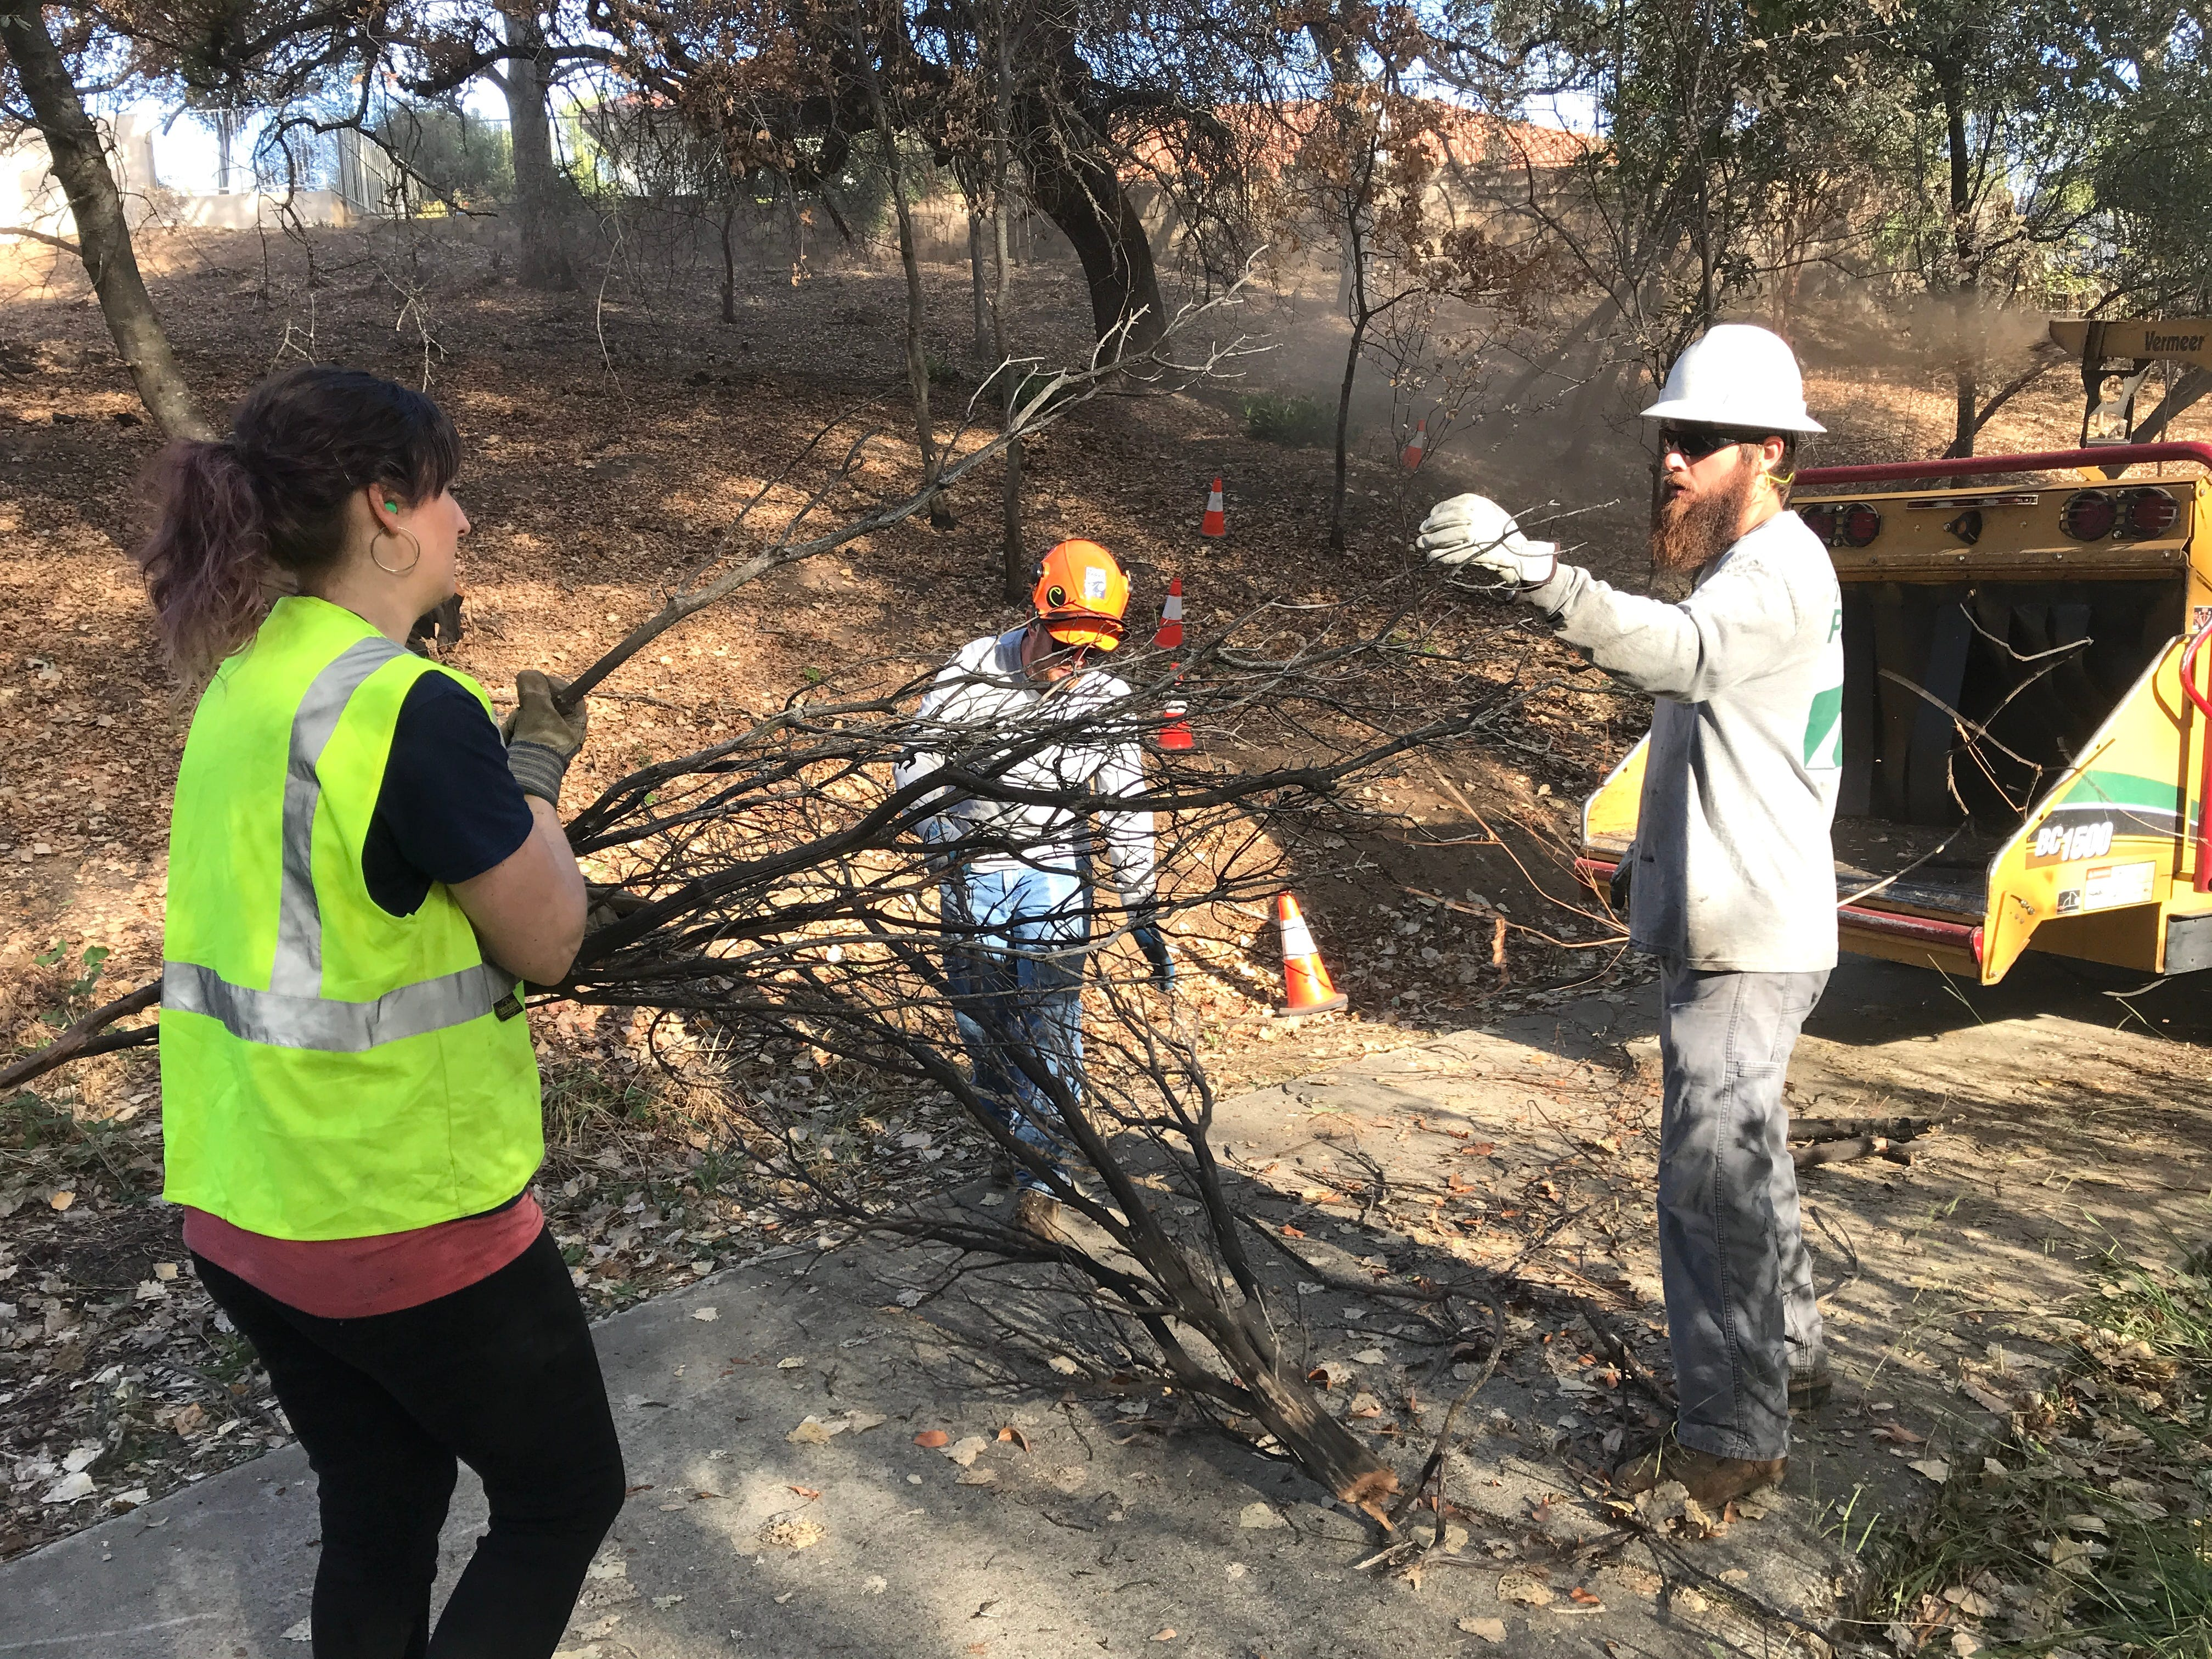 A Bethel student hands brush to a city of Redding parks employee so he can put it in a chipper. The work was being done Oct. 26 to make the Mary Lake subdivision more fire safe.